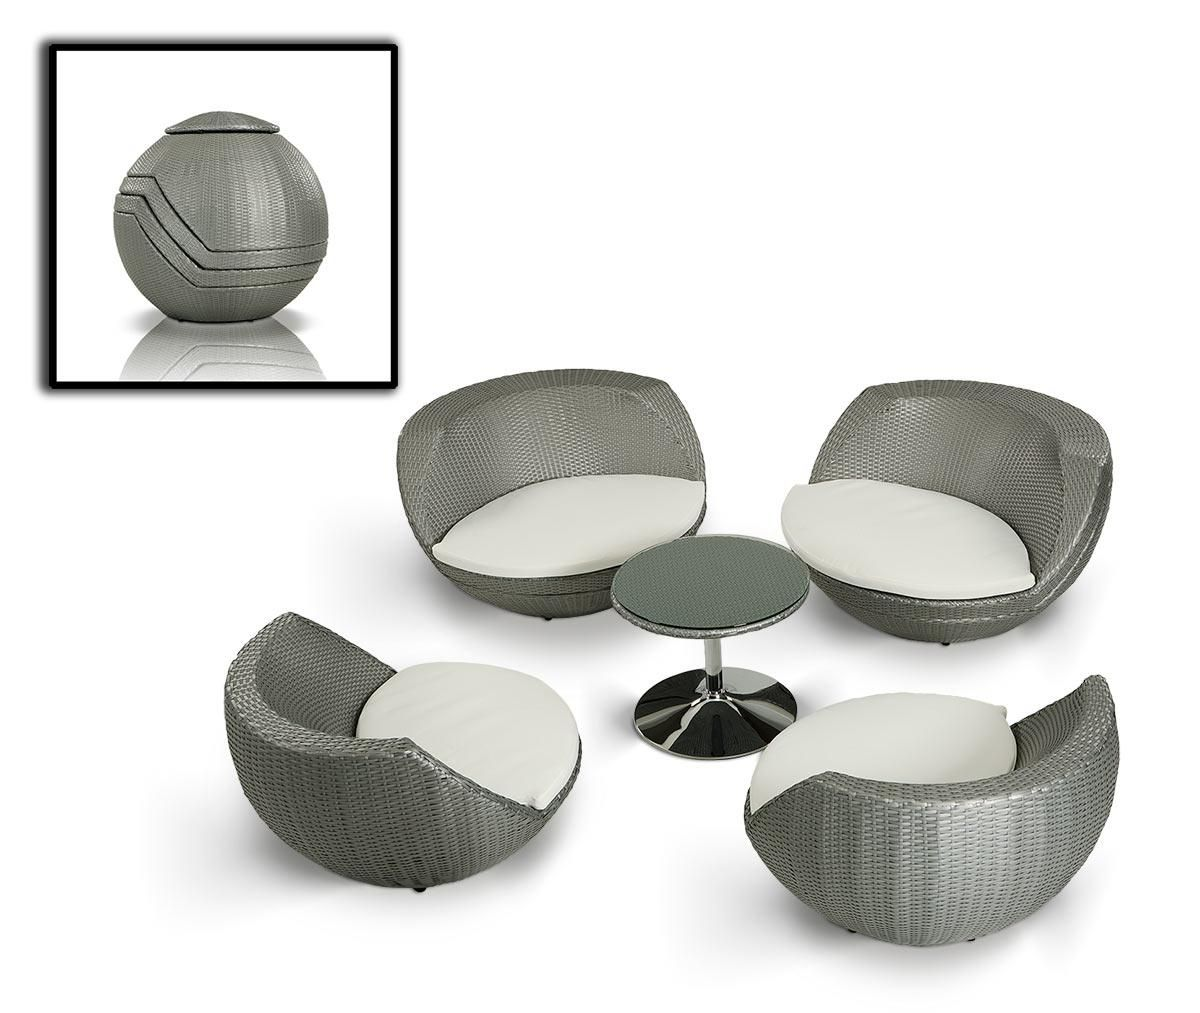 Egg Shaped Wicker Chair Renava Ovum Modern 5 Piece Egg Shape Patio Set